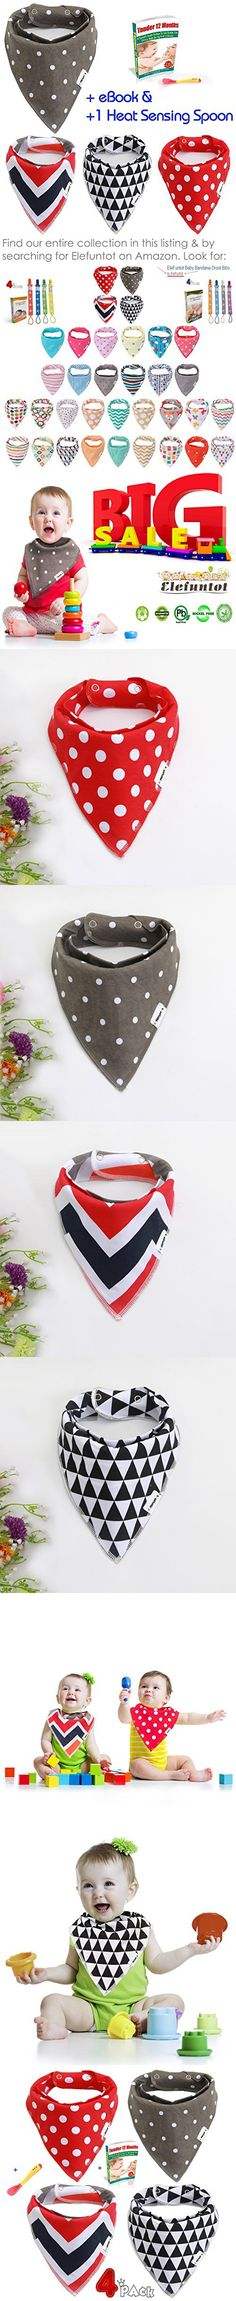 4 Baby Bandana Drool Bibs by Elefuntot, with Heat-Sensing SPOON & 2 YKK Snaps, Cute & Stylish, Functional absorbent & Safe on your Baby, Made of 100% Organic Cotton, Unisex, Makes a Great Shower Gift